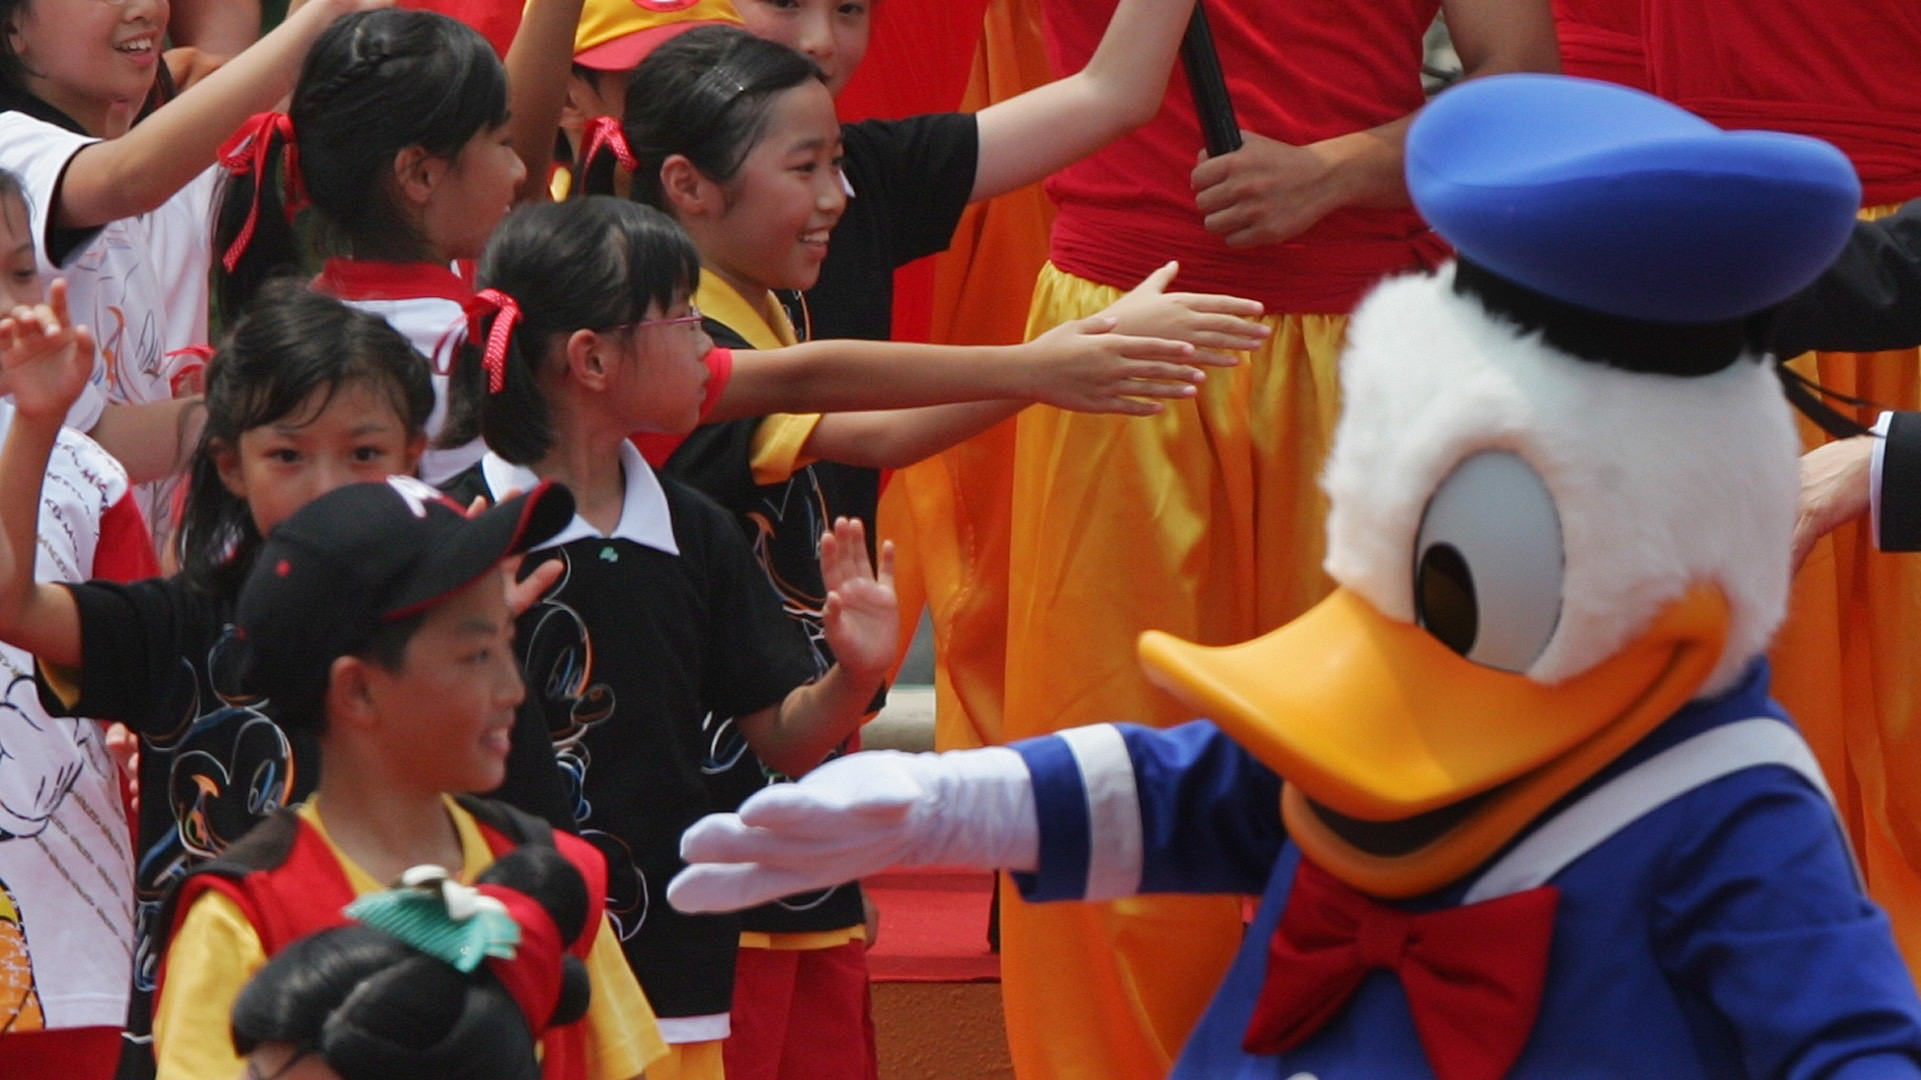 Hong Kong Chief Executive Donald Tsang (R) and Disney character Donald Duck greet young performers during the opening ceremony of Hong Kong Disneyland September 12, 2005. Disney officially opens its new Hong Kong theme park on Monday, bringing a slice of the Magic Kingdom to the Middle Kingdom with a careful blend of American showmanship and Chinese characteristics. REUTERS/Bobby Yip  BY/mk - RTRNLAU